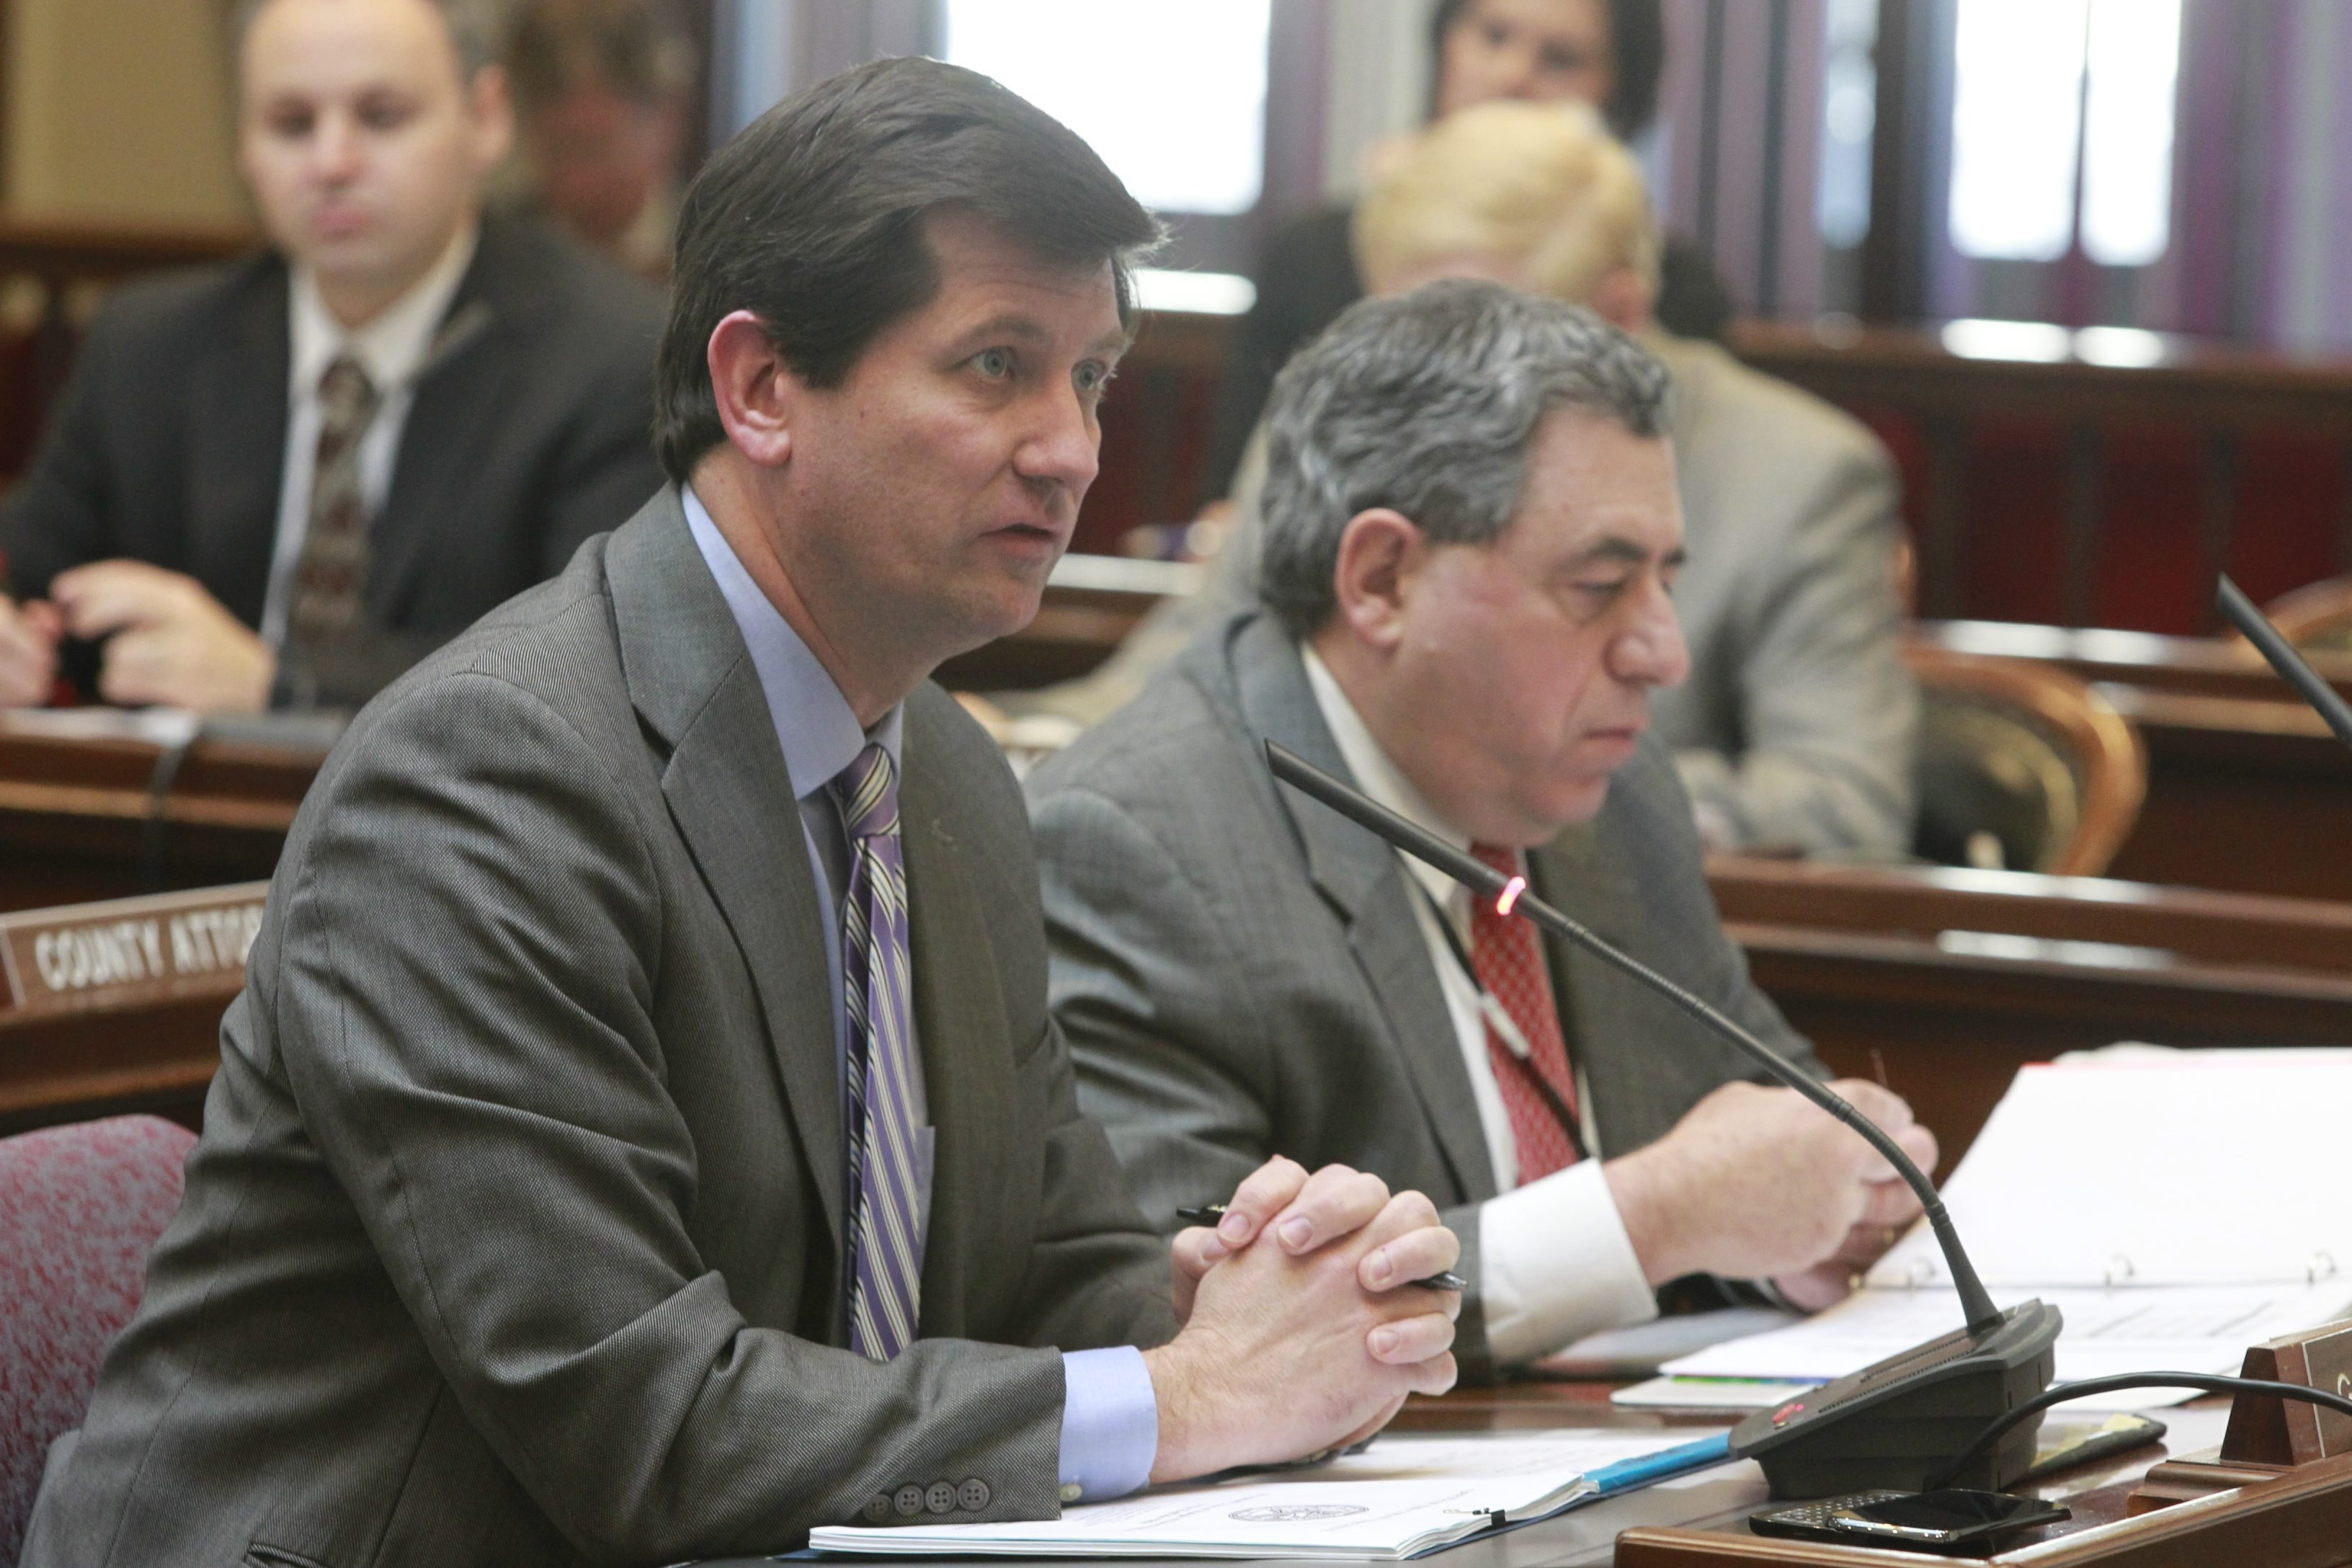 Erie County Executive Mark Poloncarz, left, has a proposal that cites the need to raise taxes or make cuts, or a combination of both. (John Hickey / Buffalo News file photo)